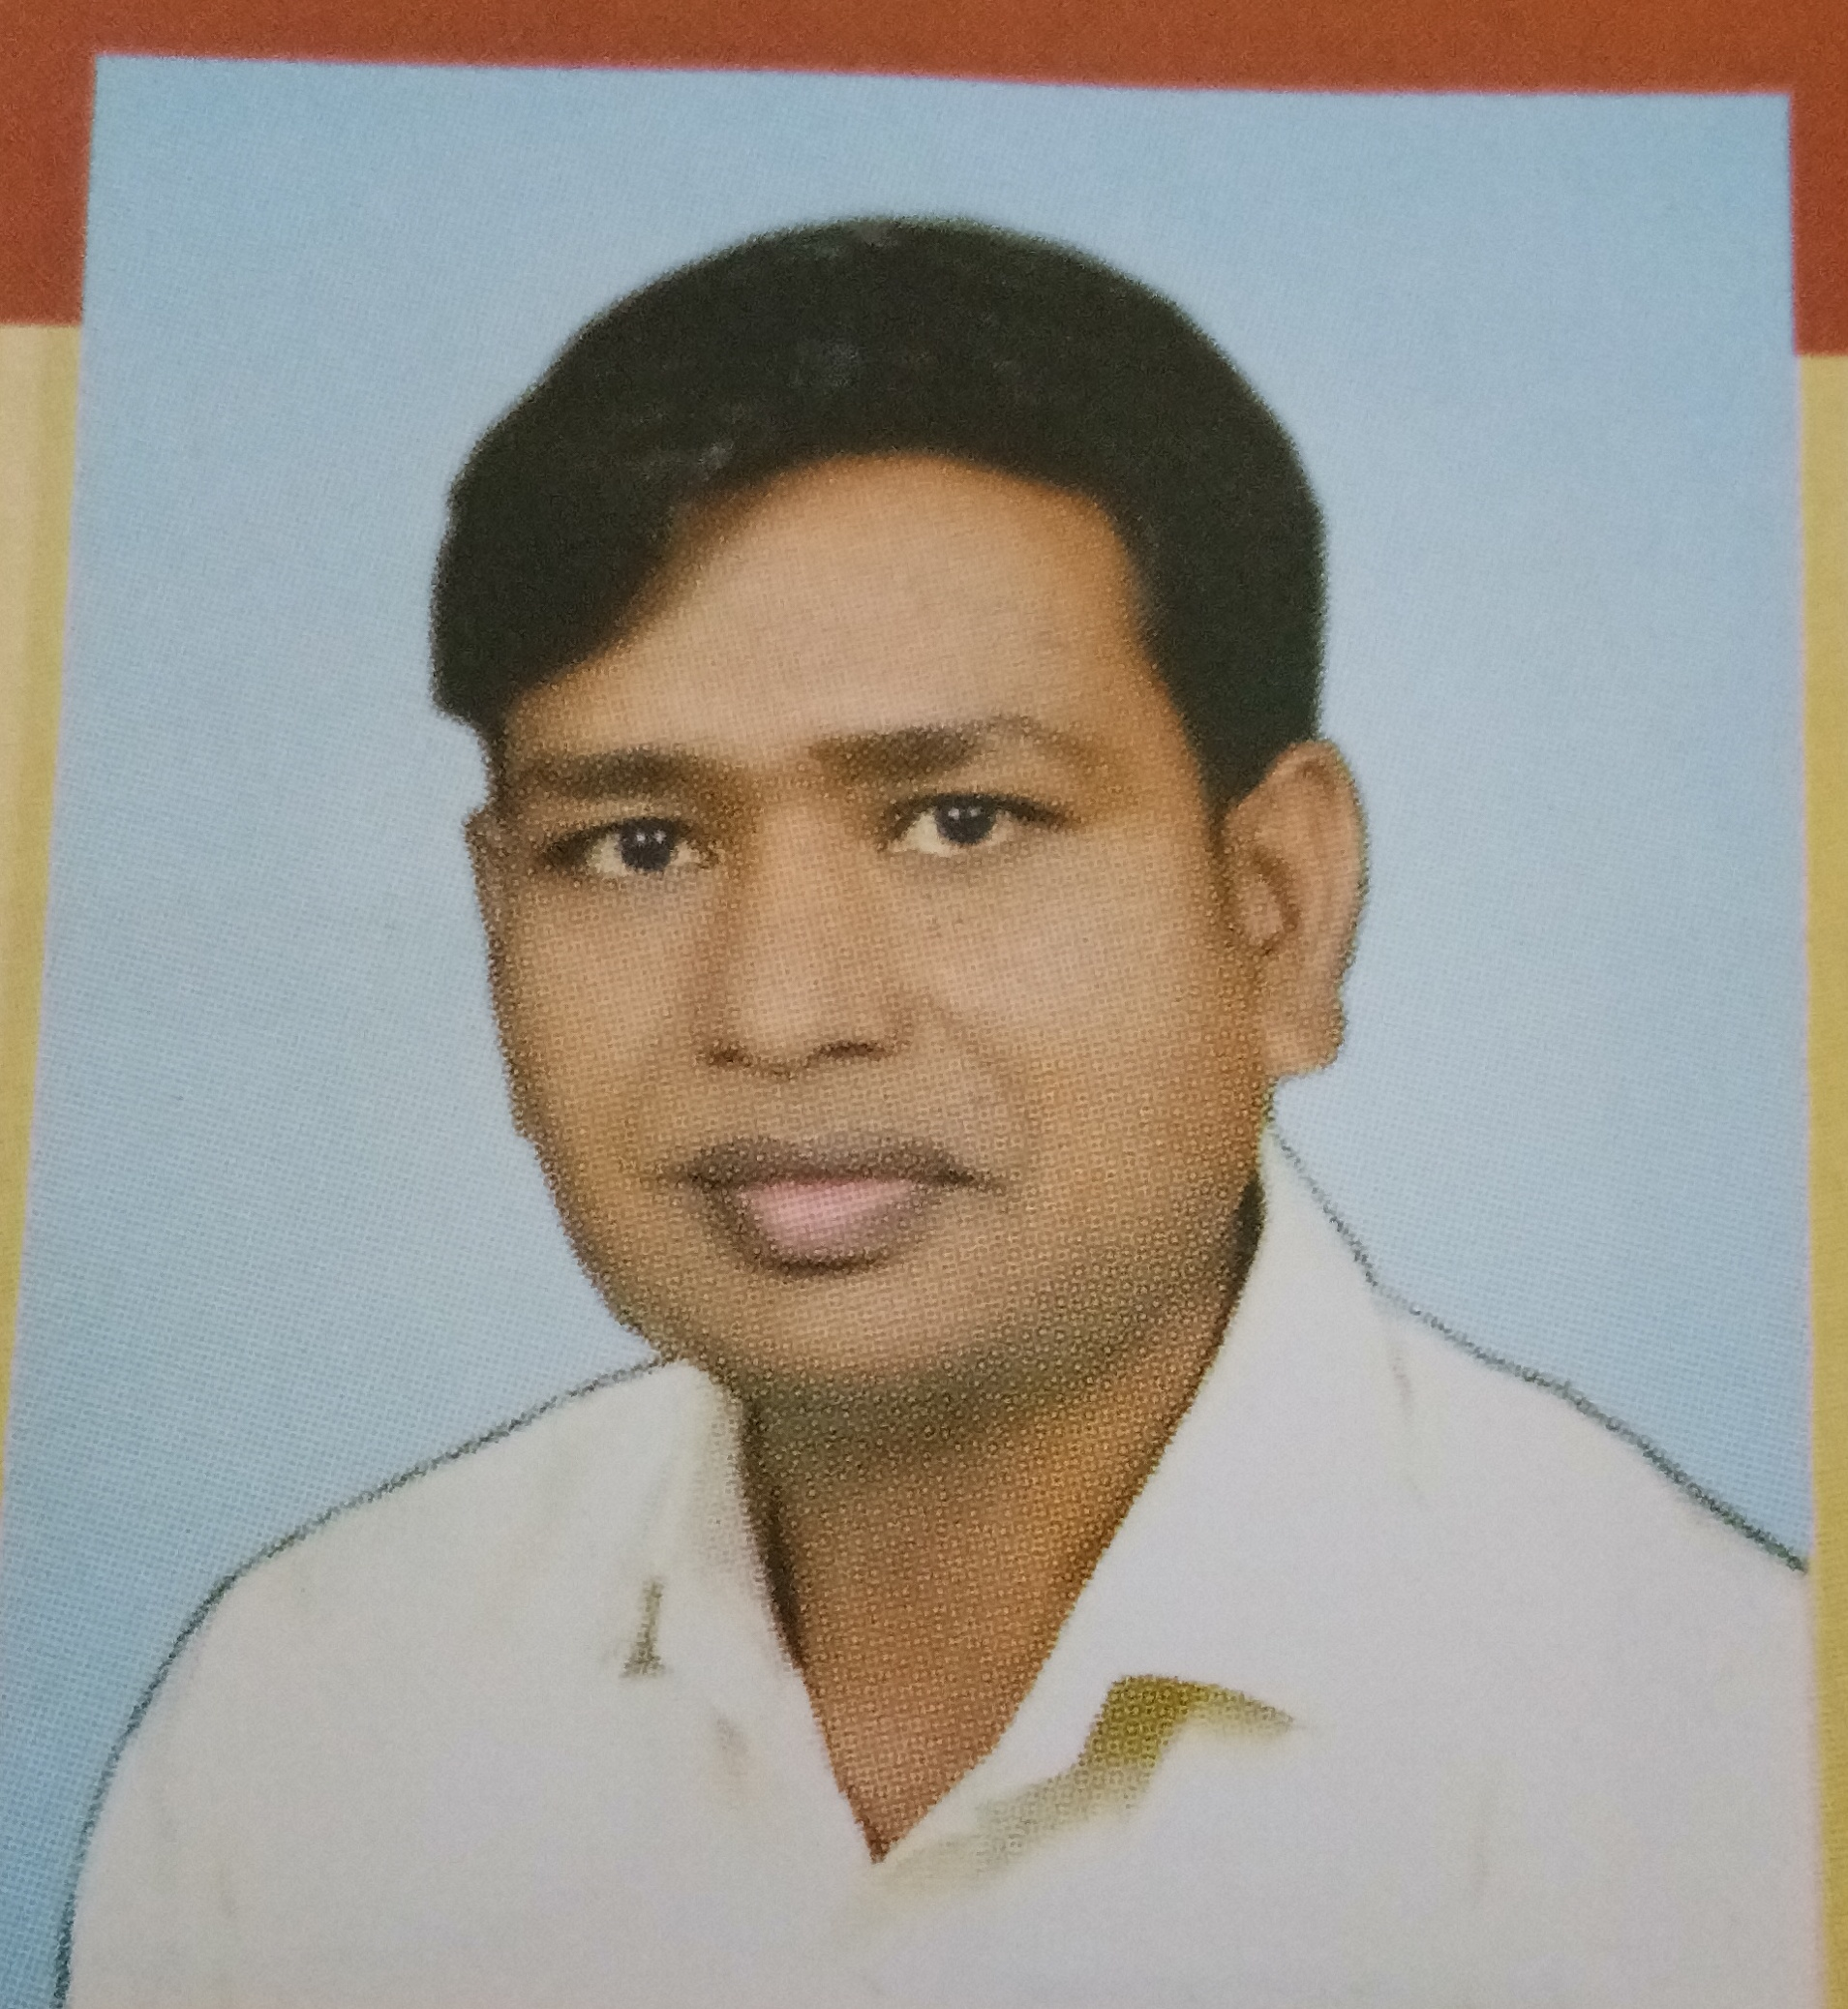 Mahaveer Sir Profile Picture from Pant Agro Classes in Kota